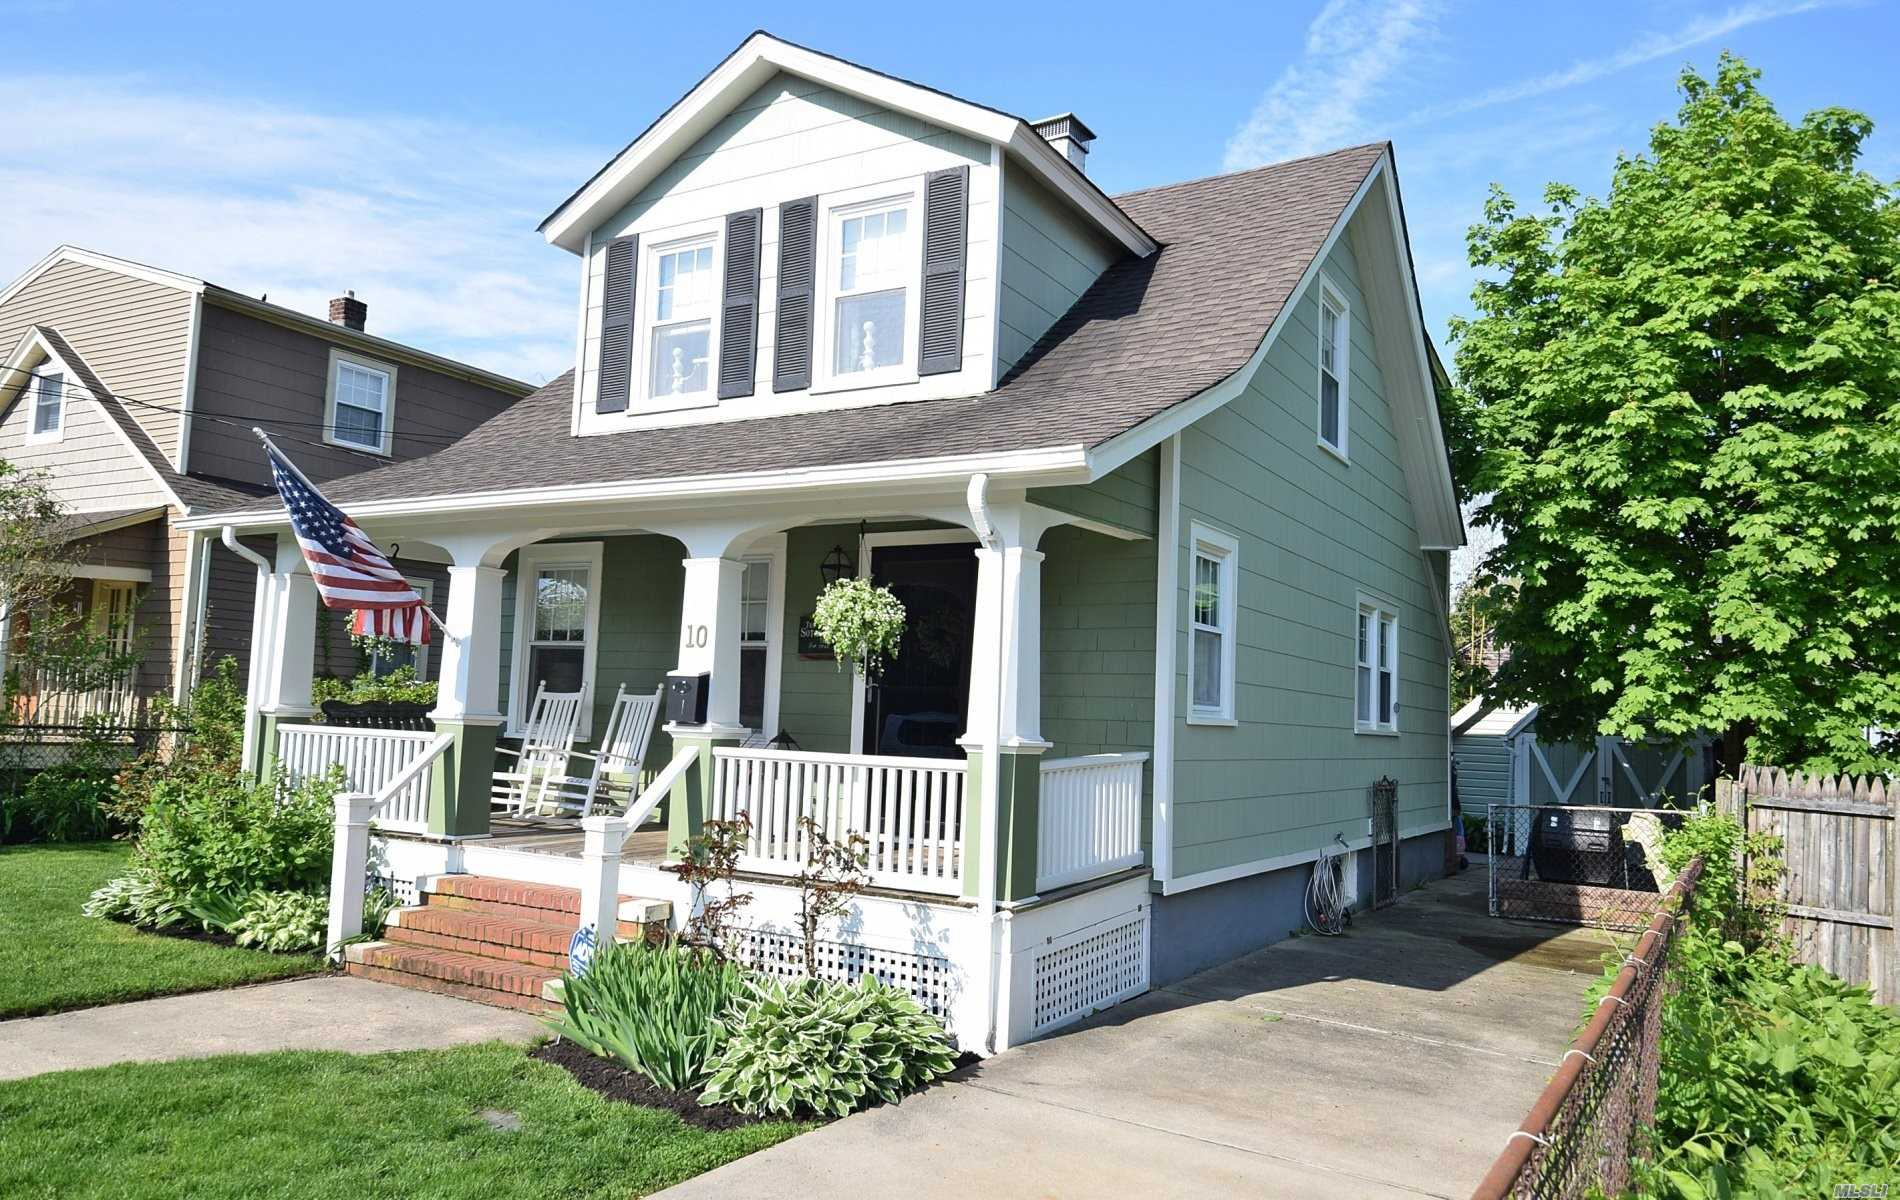 This is East Islip Charm Colonial Recently Renovated New Upgrades. 3 Bedrooms 2 Full Baths , Central Air , Sprinklers Front & Back. You will love this home. The photos tell you how perfect this home is. #homesweethome